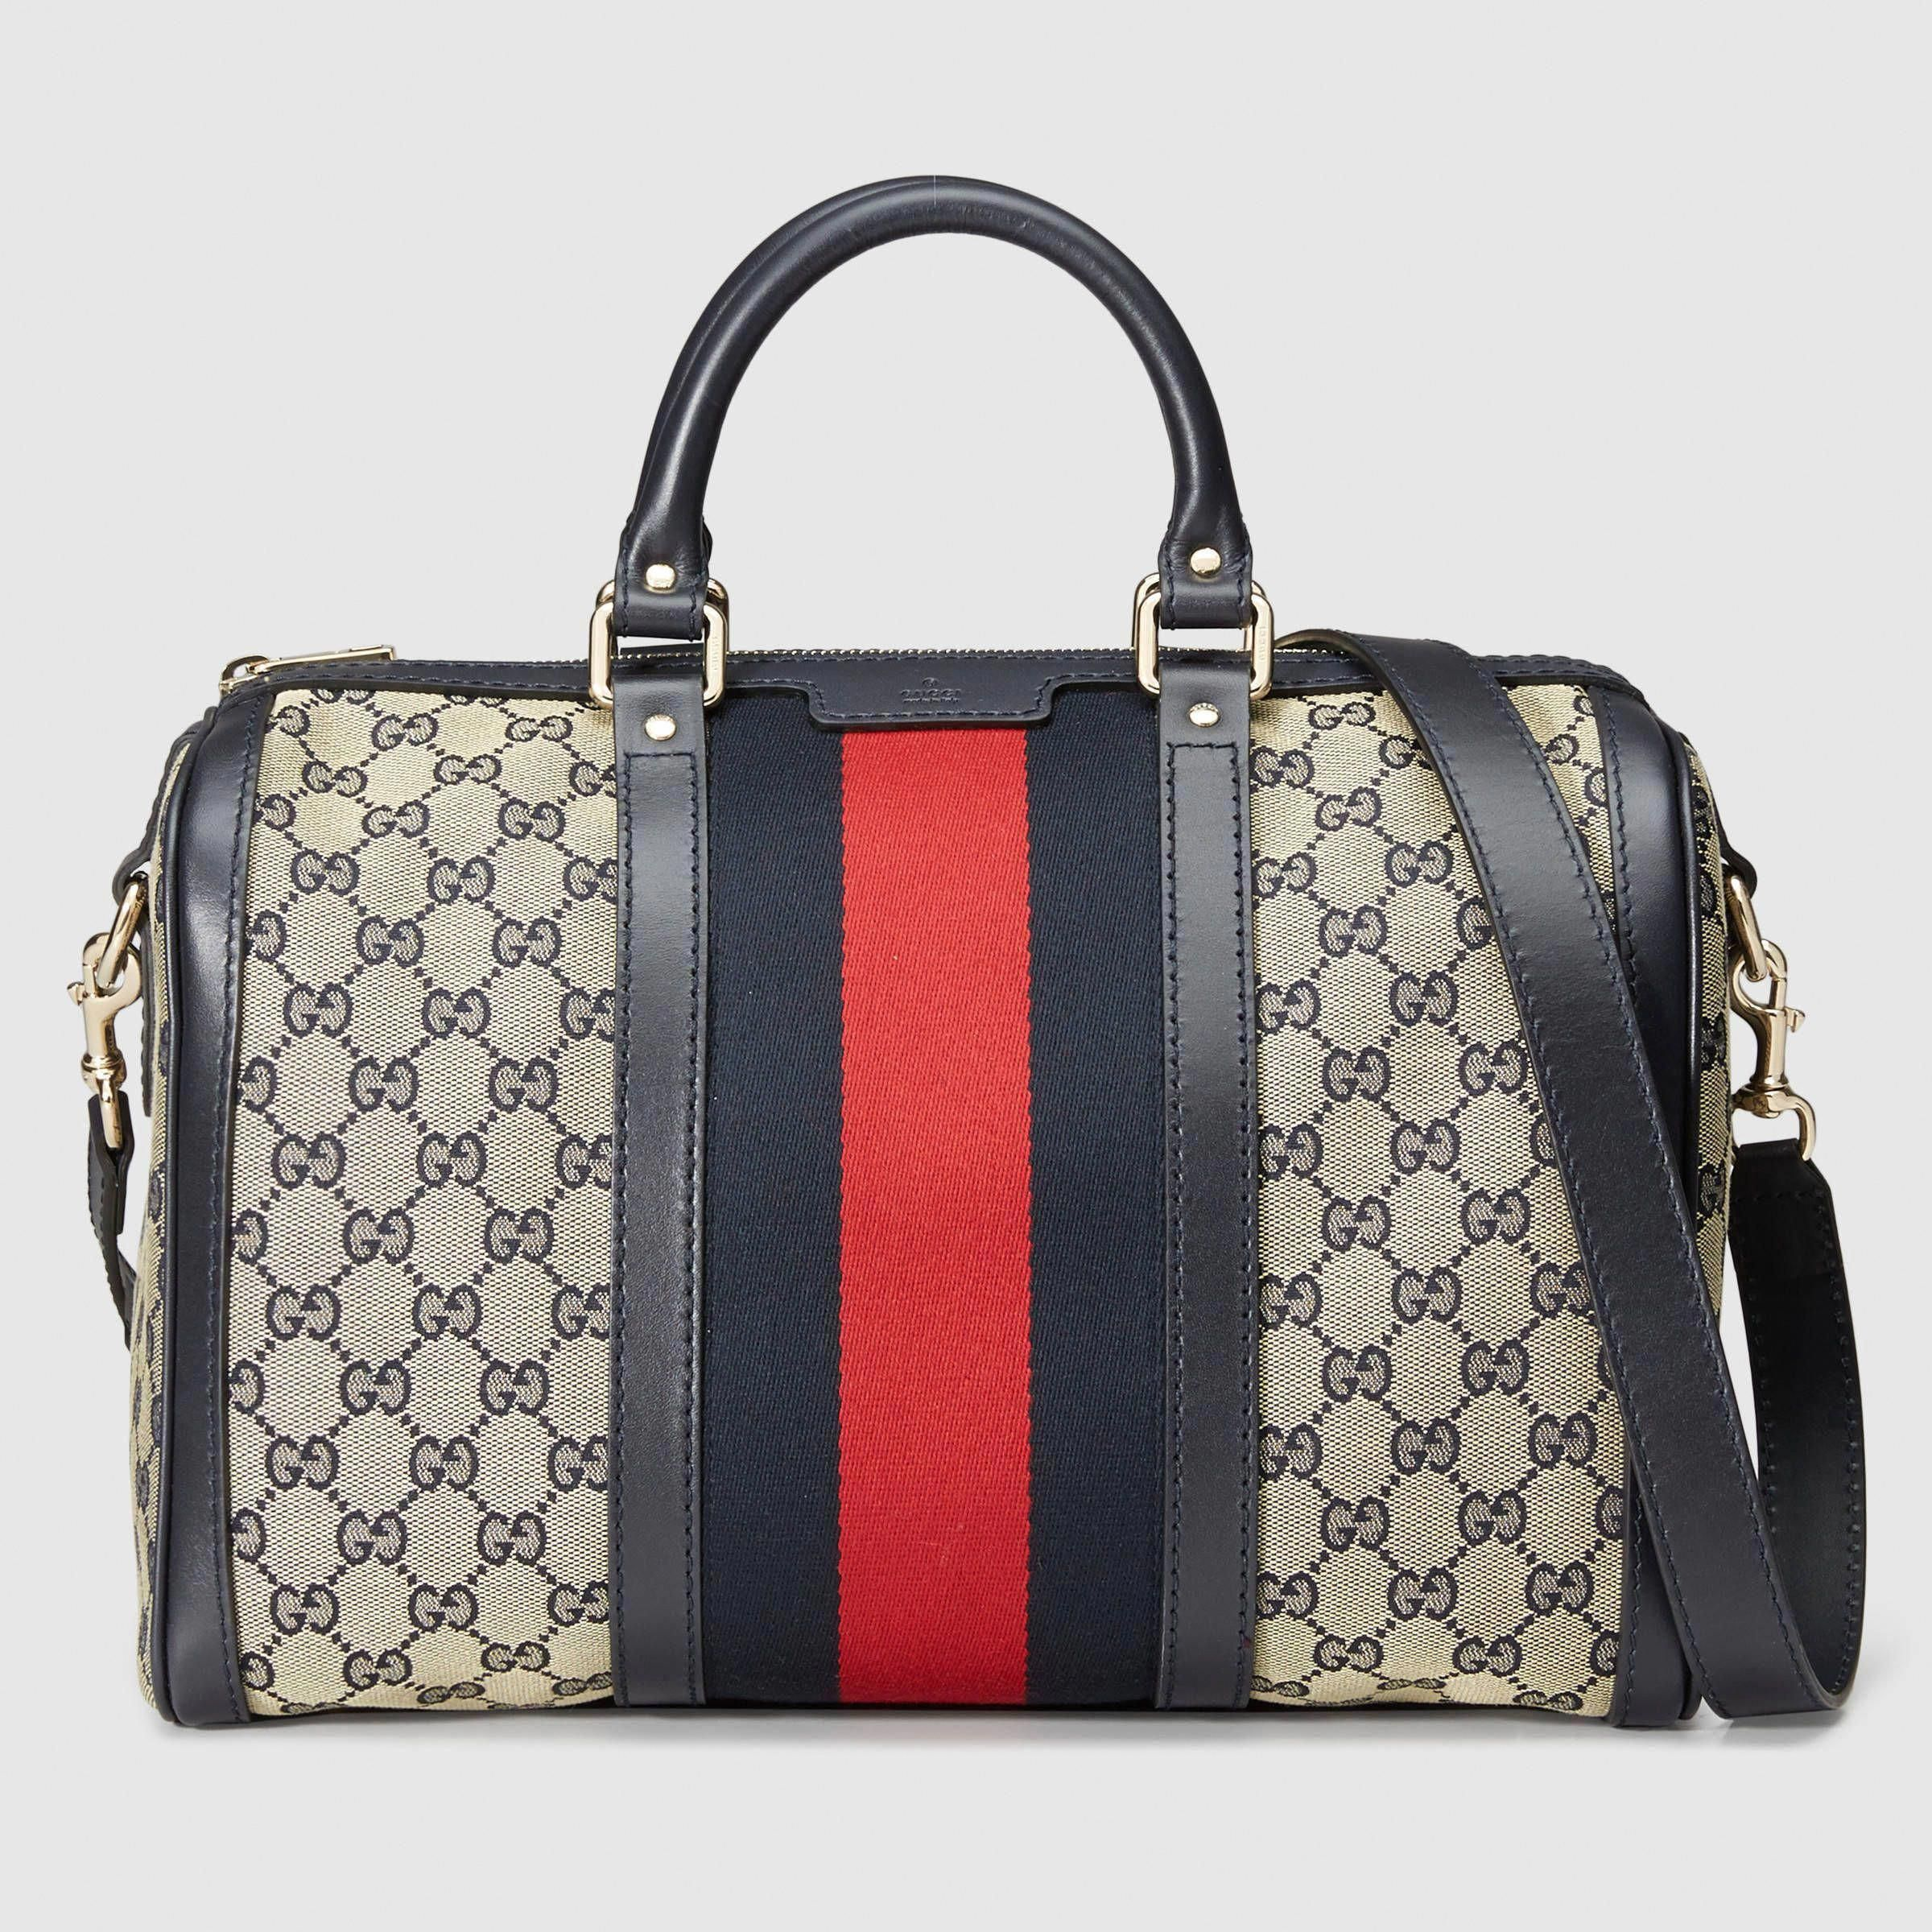 eaf99569f6c0d0 gucci handbags used #Guccihandbags. gucci handbags used #Guccihandbags  Boston ...